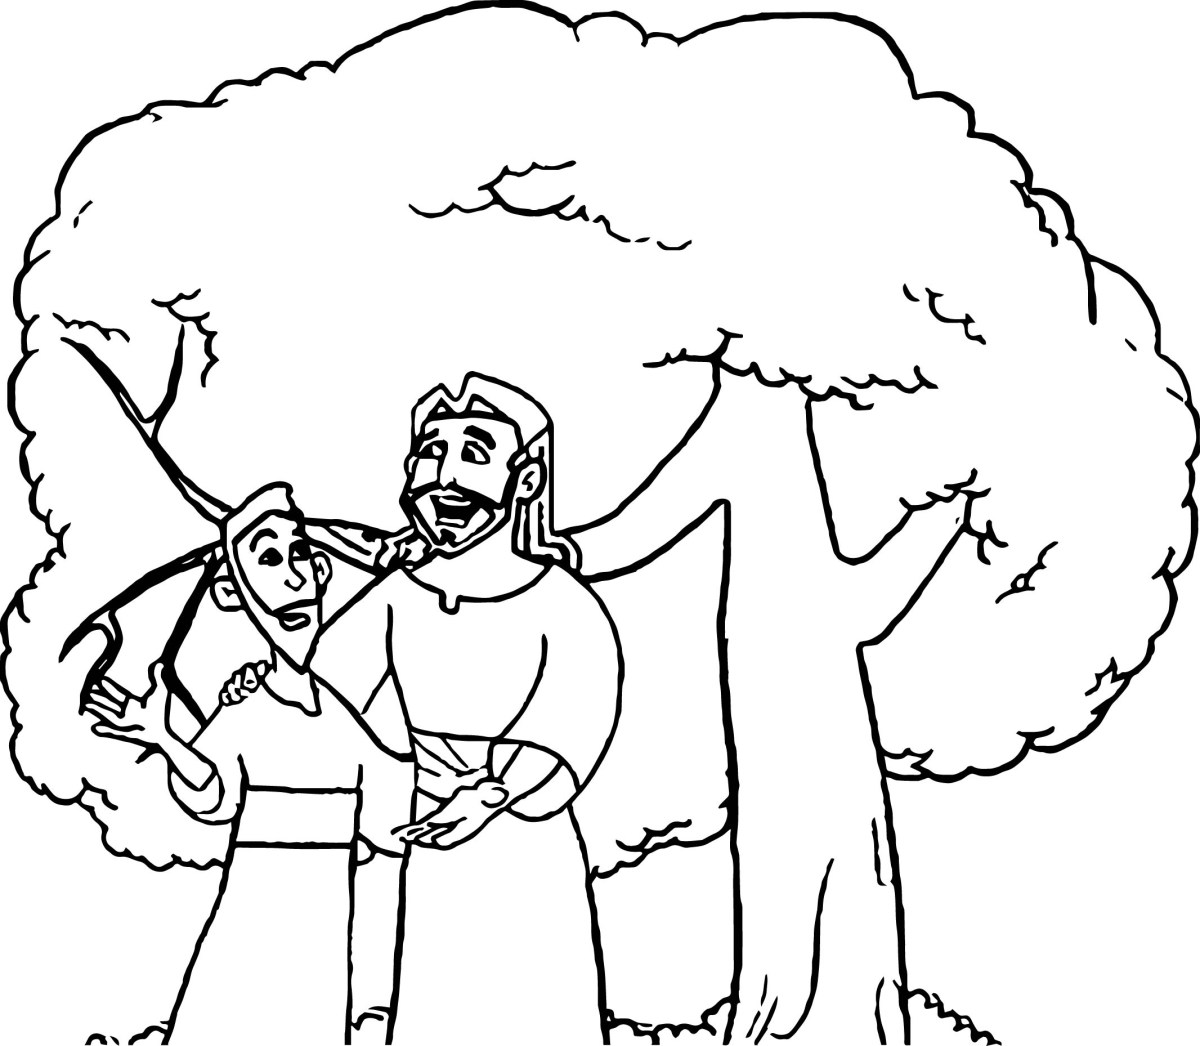 zacchaeus coloring page | Bible coloring pages / New Testament ... | 1046x1200